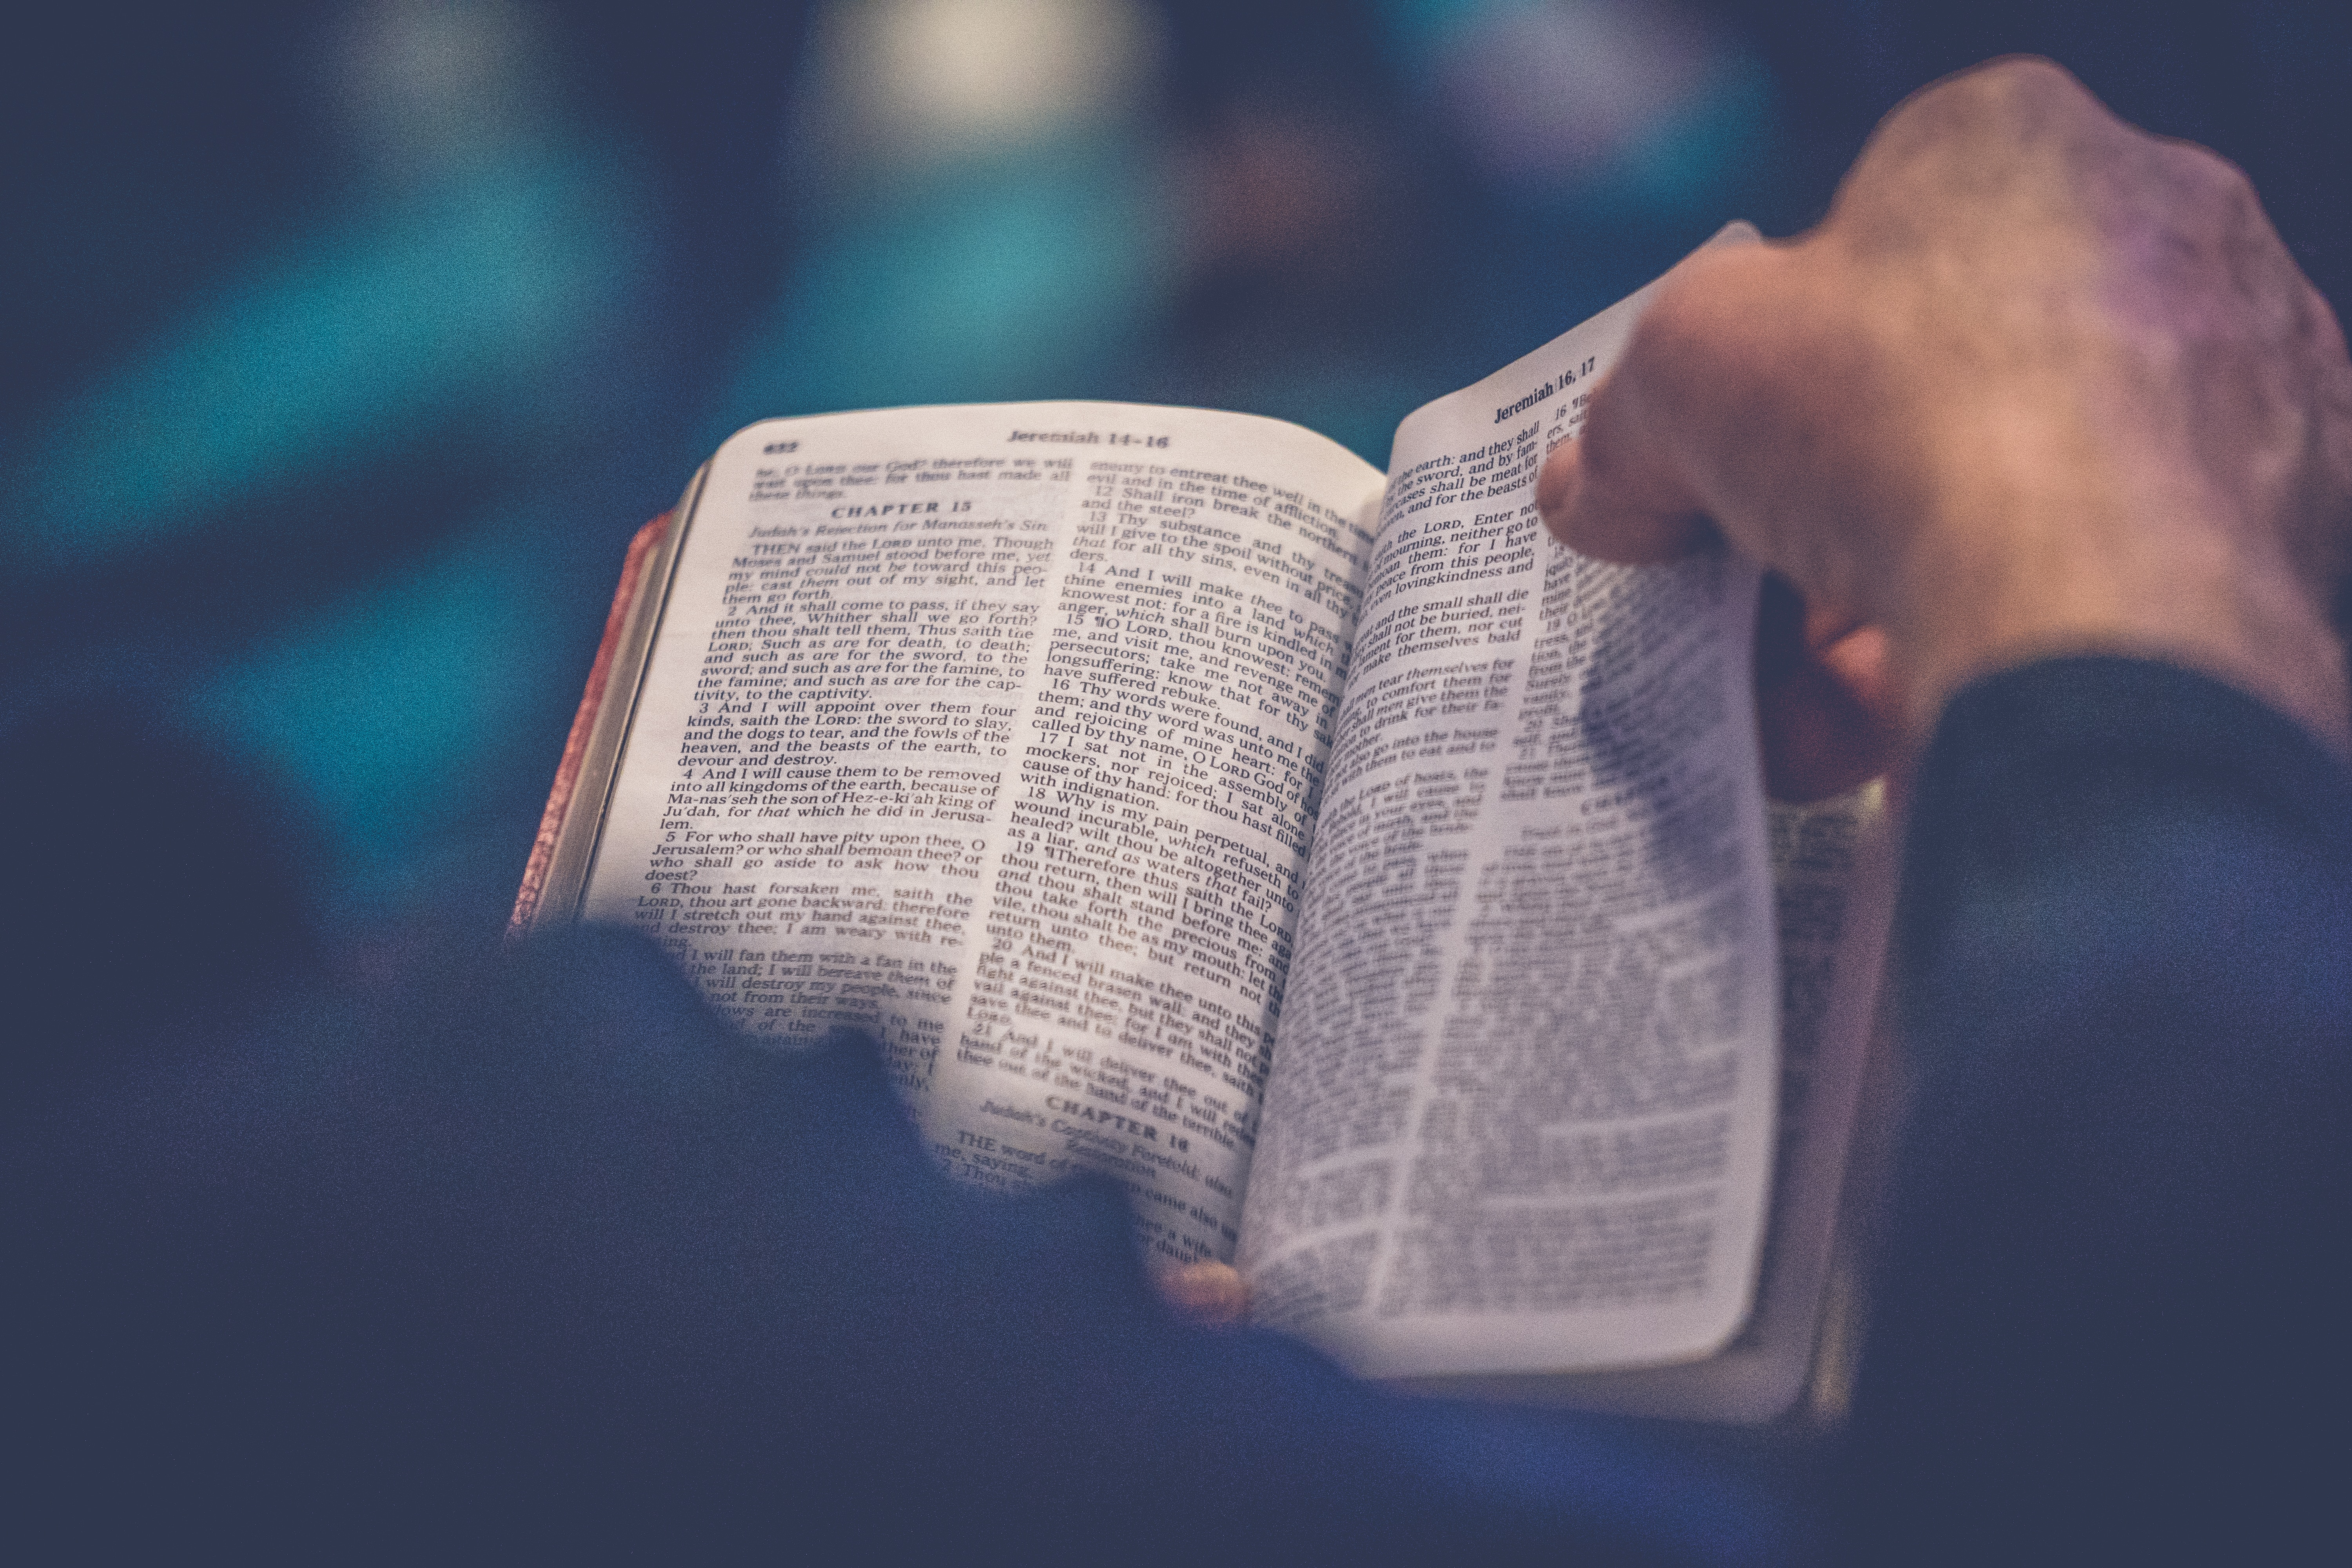 Close-up from behind of man's hand turning pages of Bible